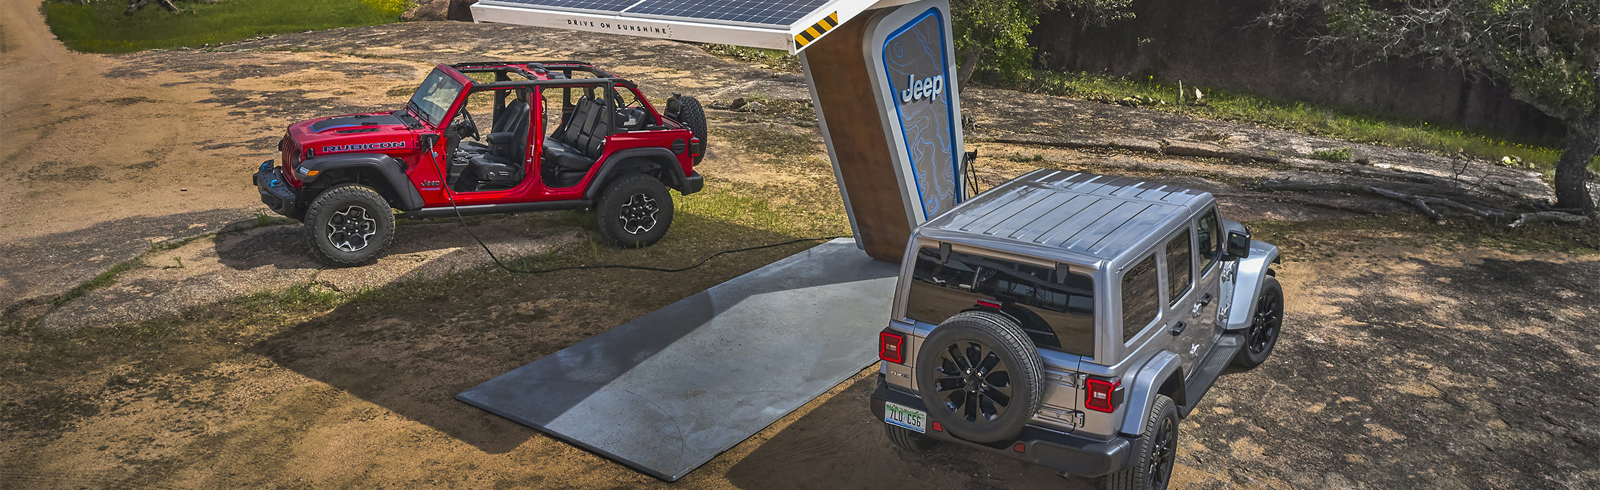 Jeep will offer a fully electric 4xe vehicle in every SUV segment by 2025